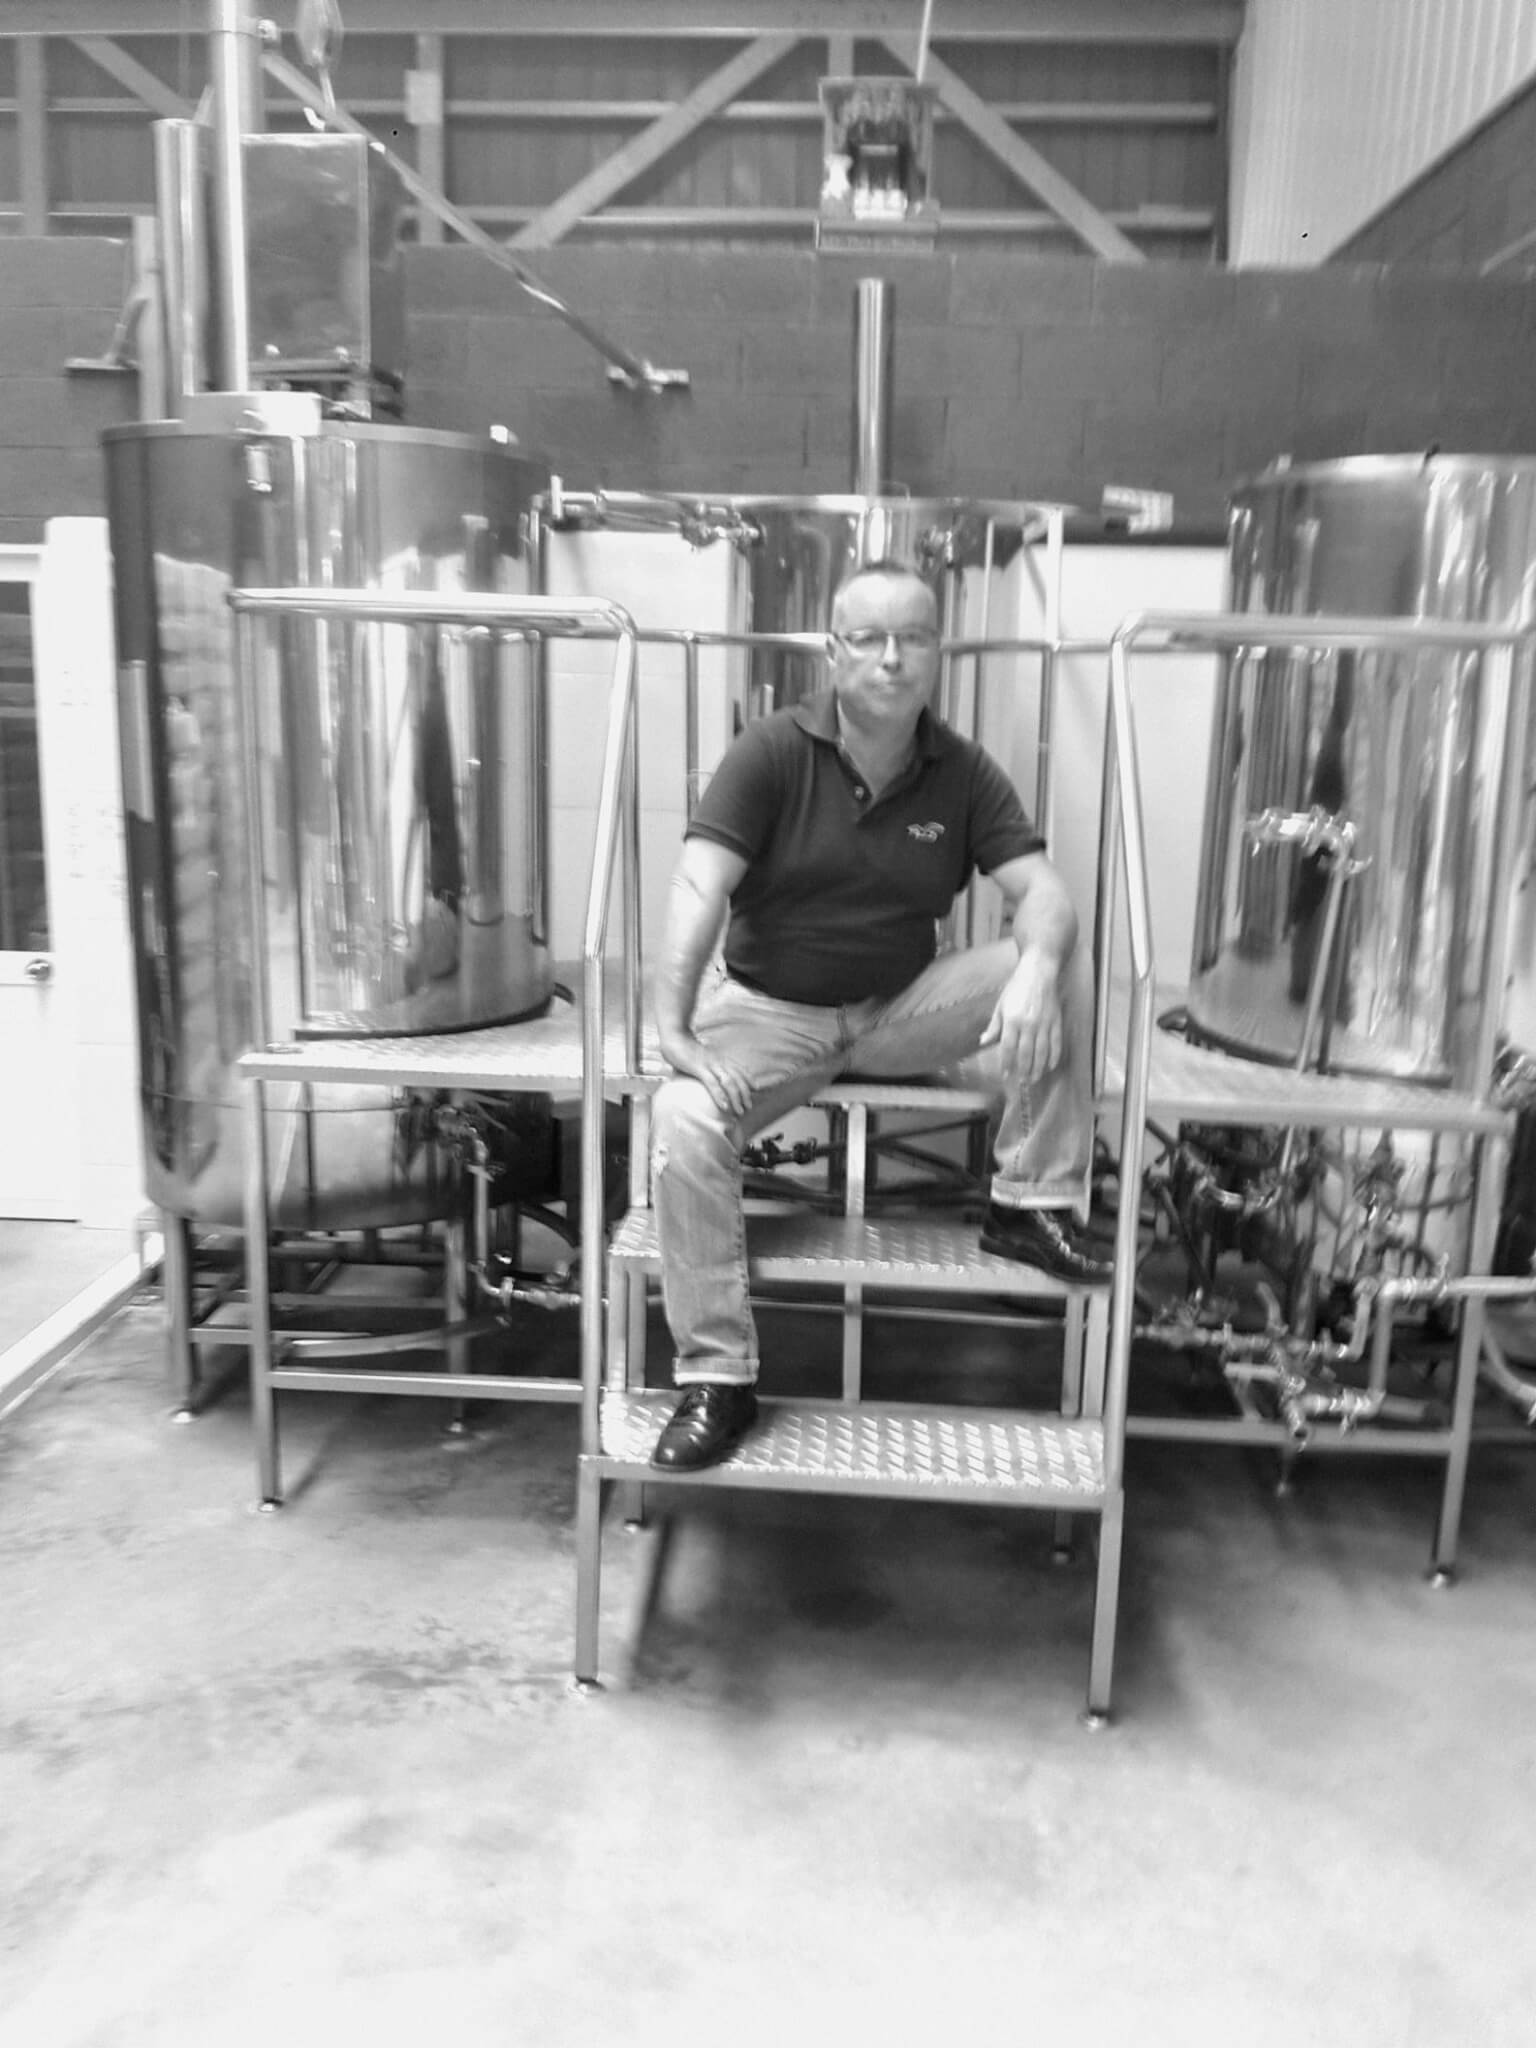 Mr. Stephane - Founder of Alkemia Brewery